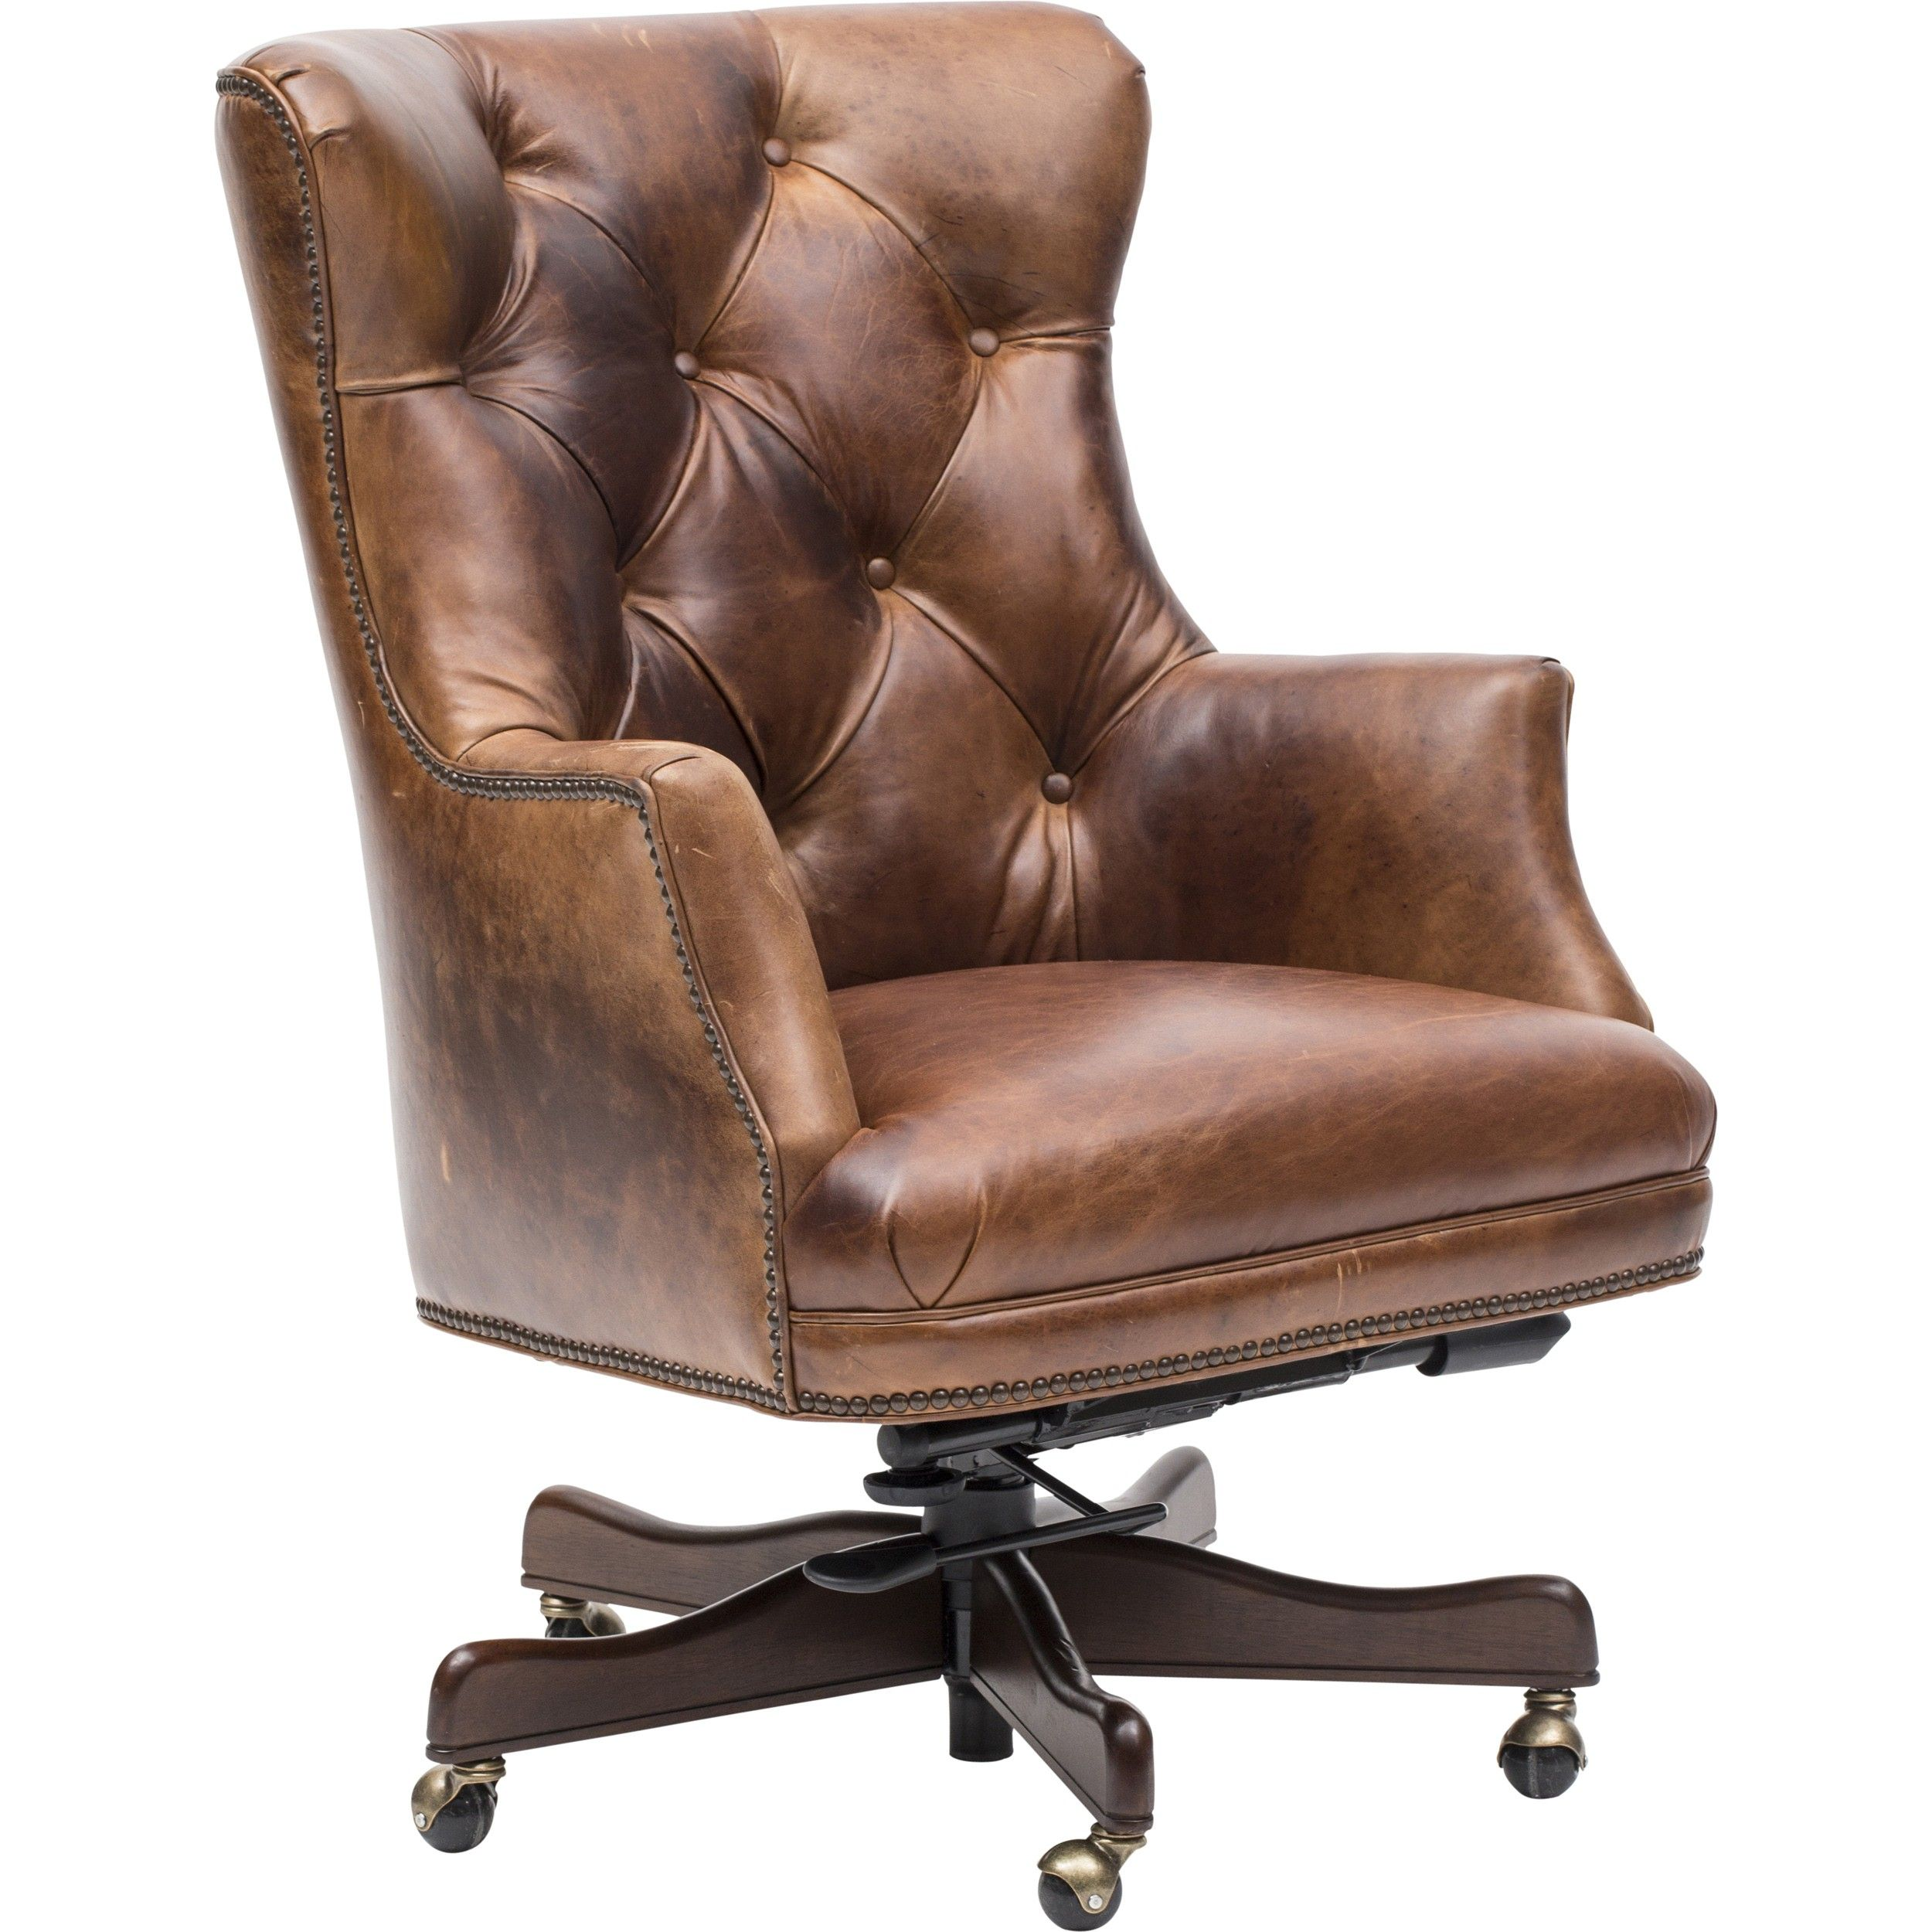 Theodore Executive Leather Office Chair